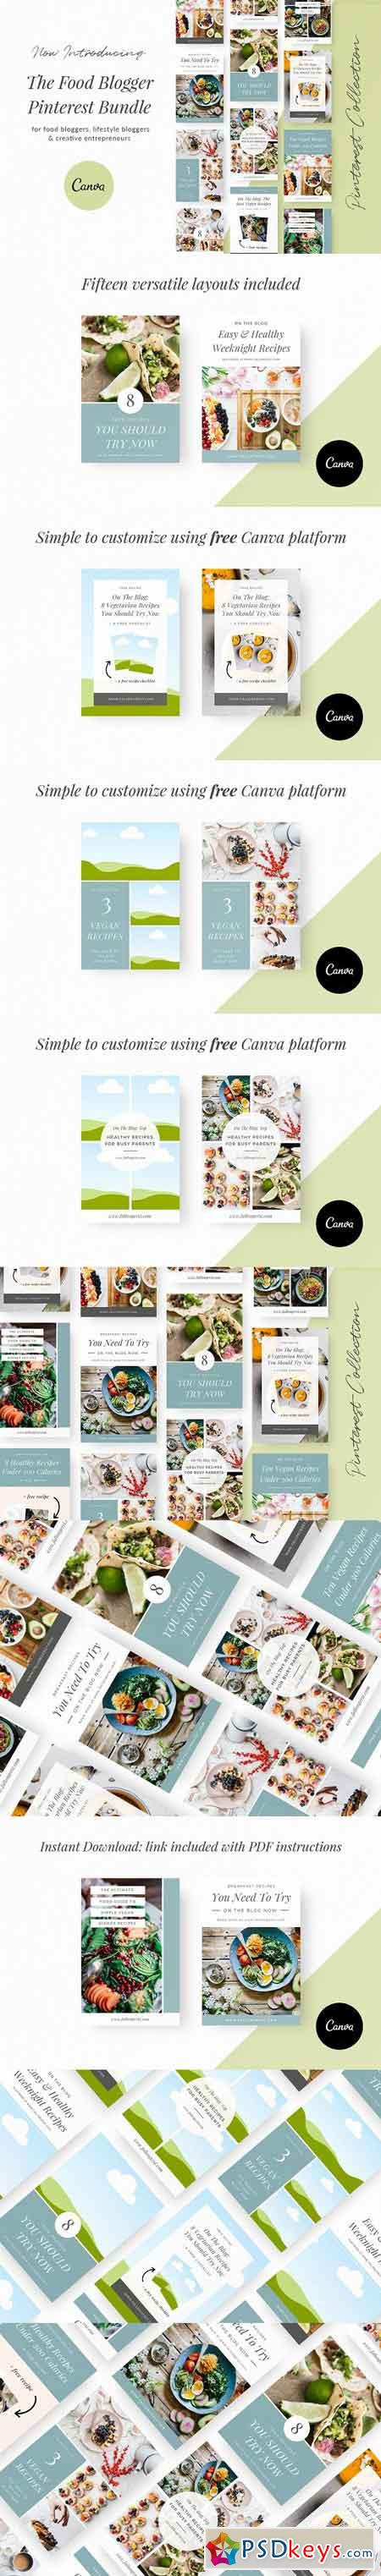 Food Blogger Pinterest Templates 3055057